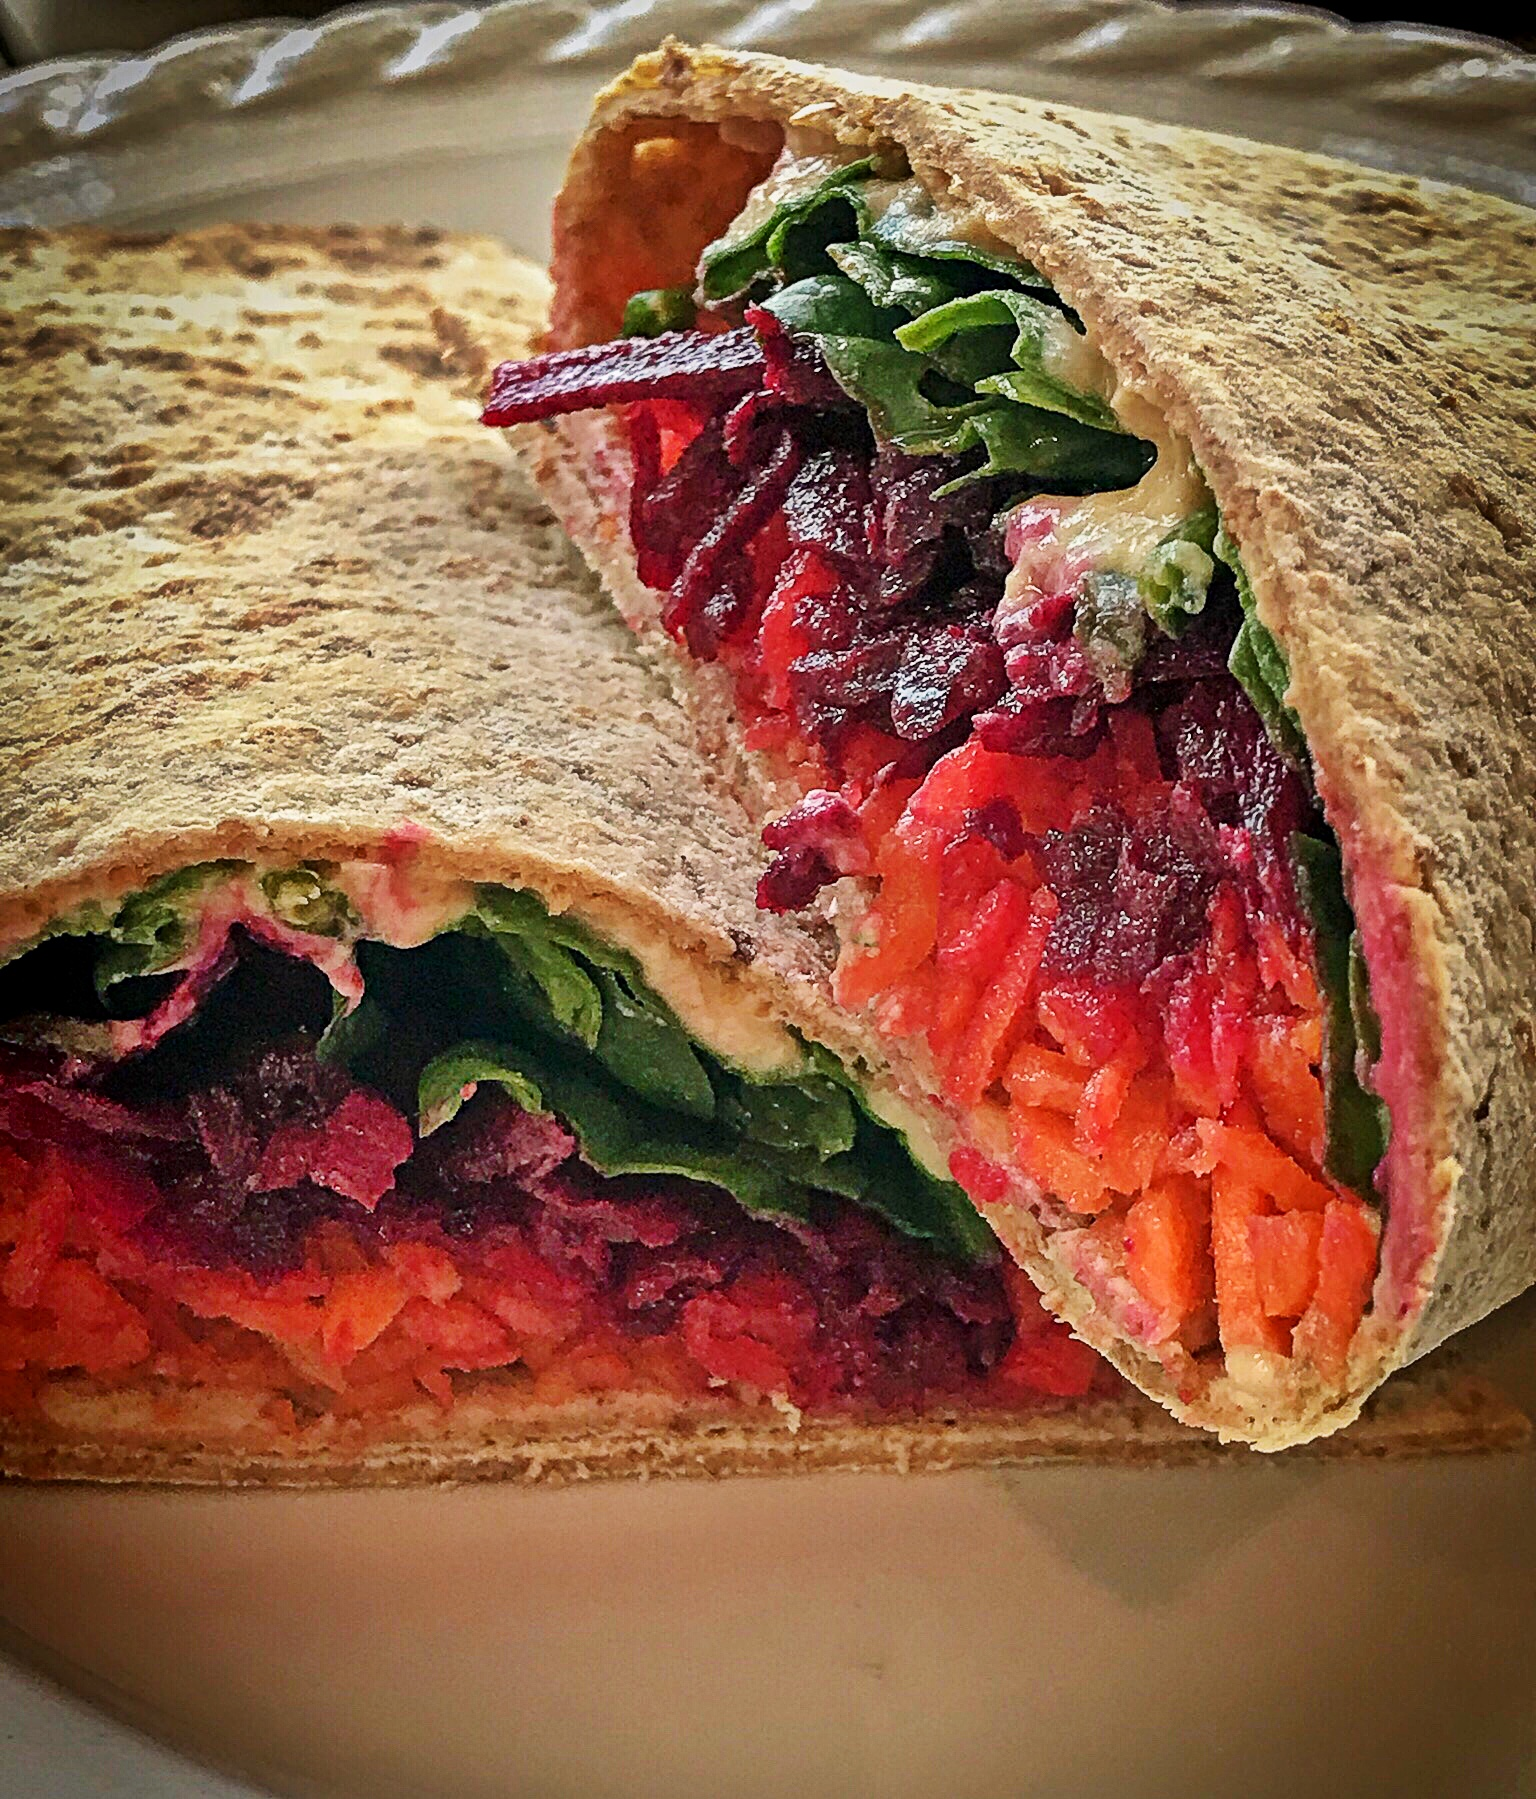 Pre shredded beets and carrots make hummus wraps fast, easy, and delicious.